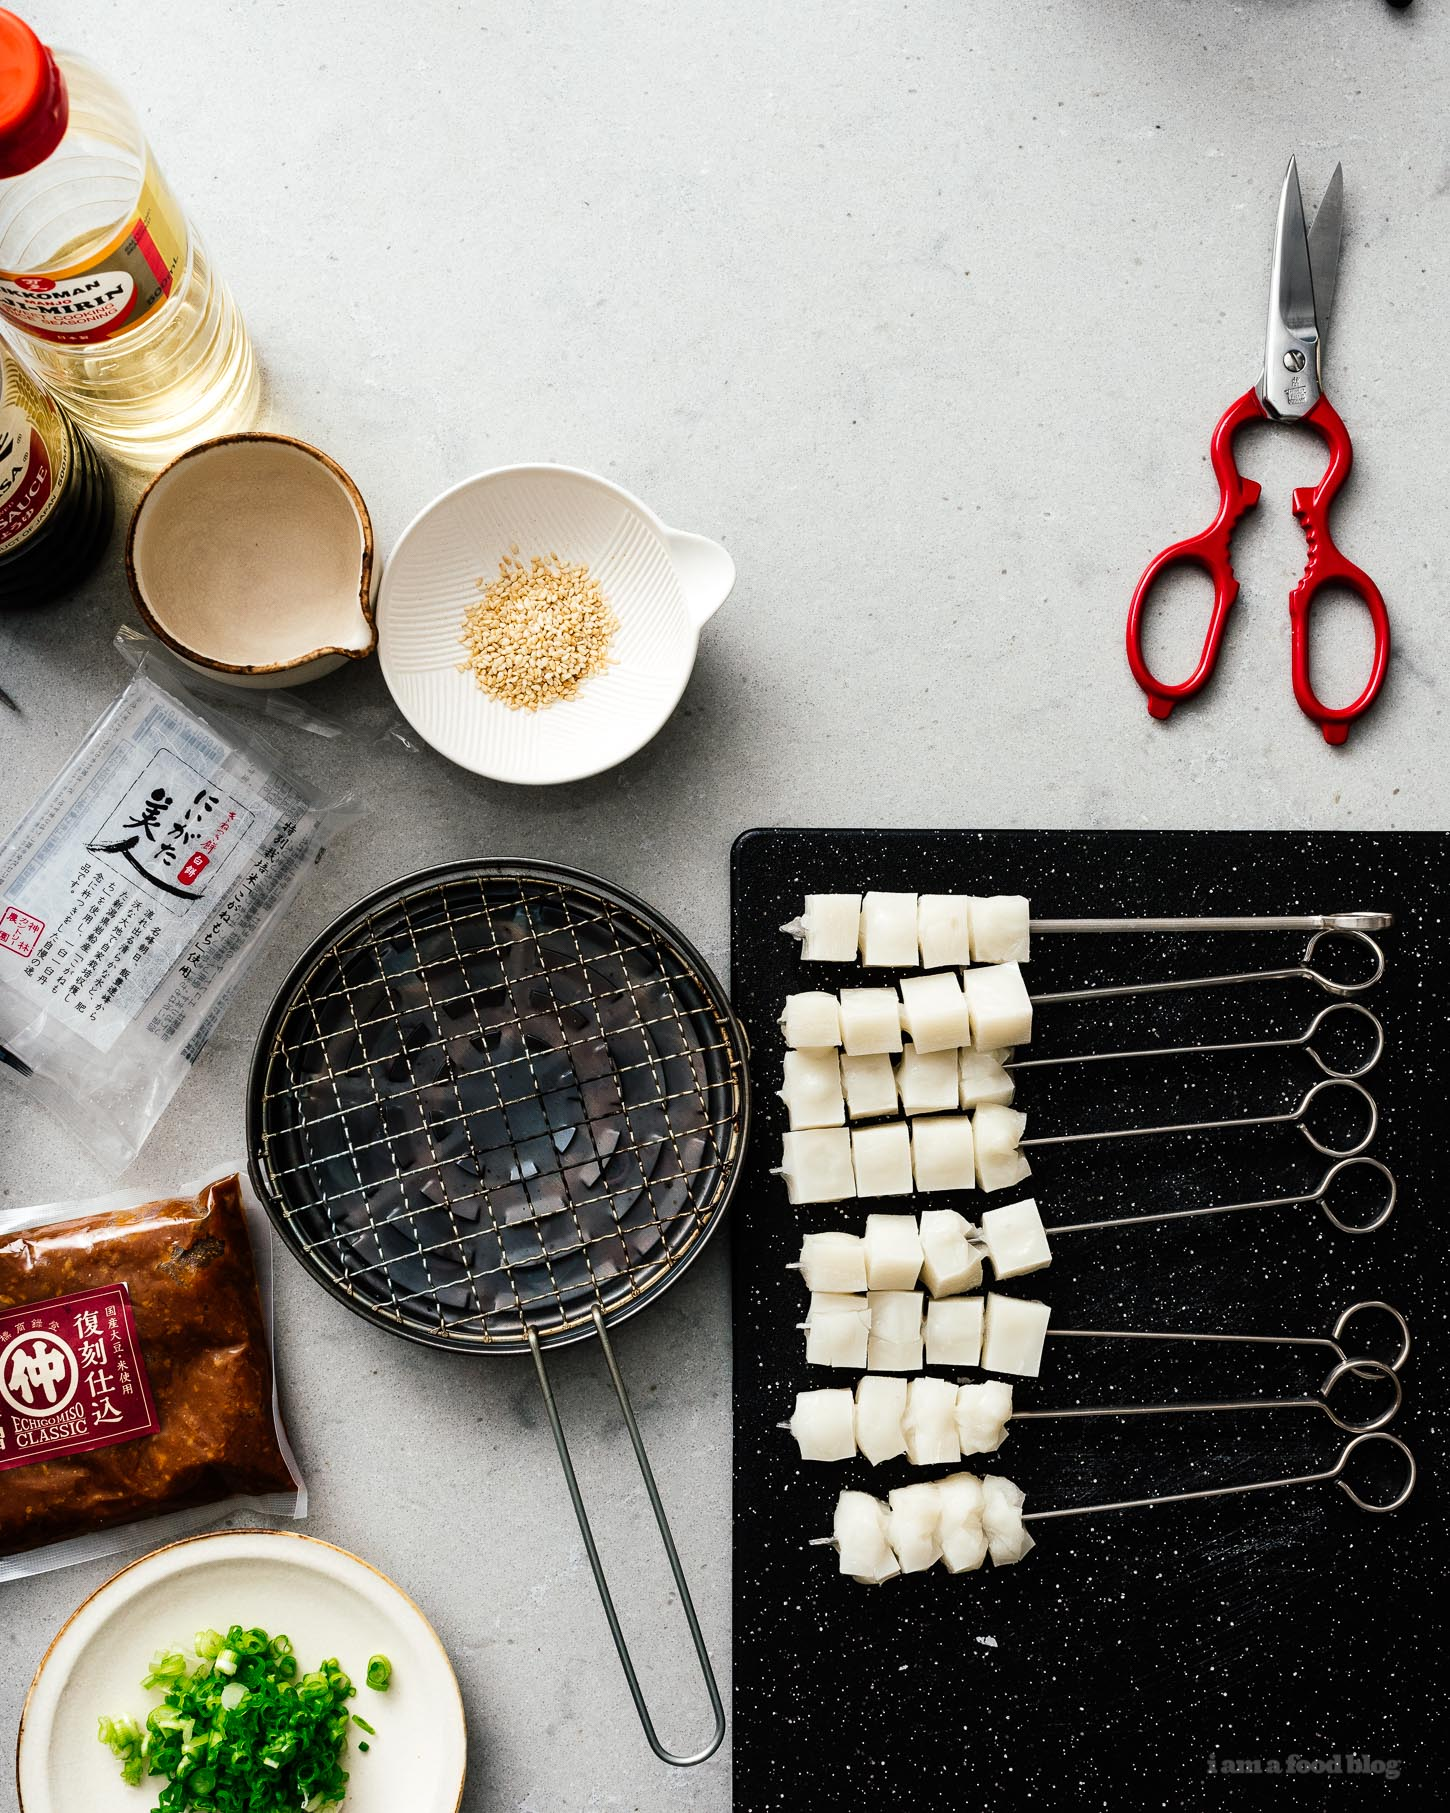 Everything you ever wanted to know about Japanese mochi: what it is, how to eat it, any why you'll want to. Trust me when I say that mochi is the secret ingredient your BBQ needs to be next level. Try this easy yakimochi recipe, you'll never be the same again! #mochi #japanesefood #recipes #japanese